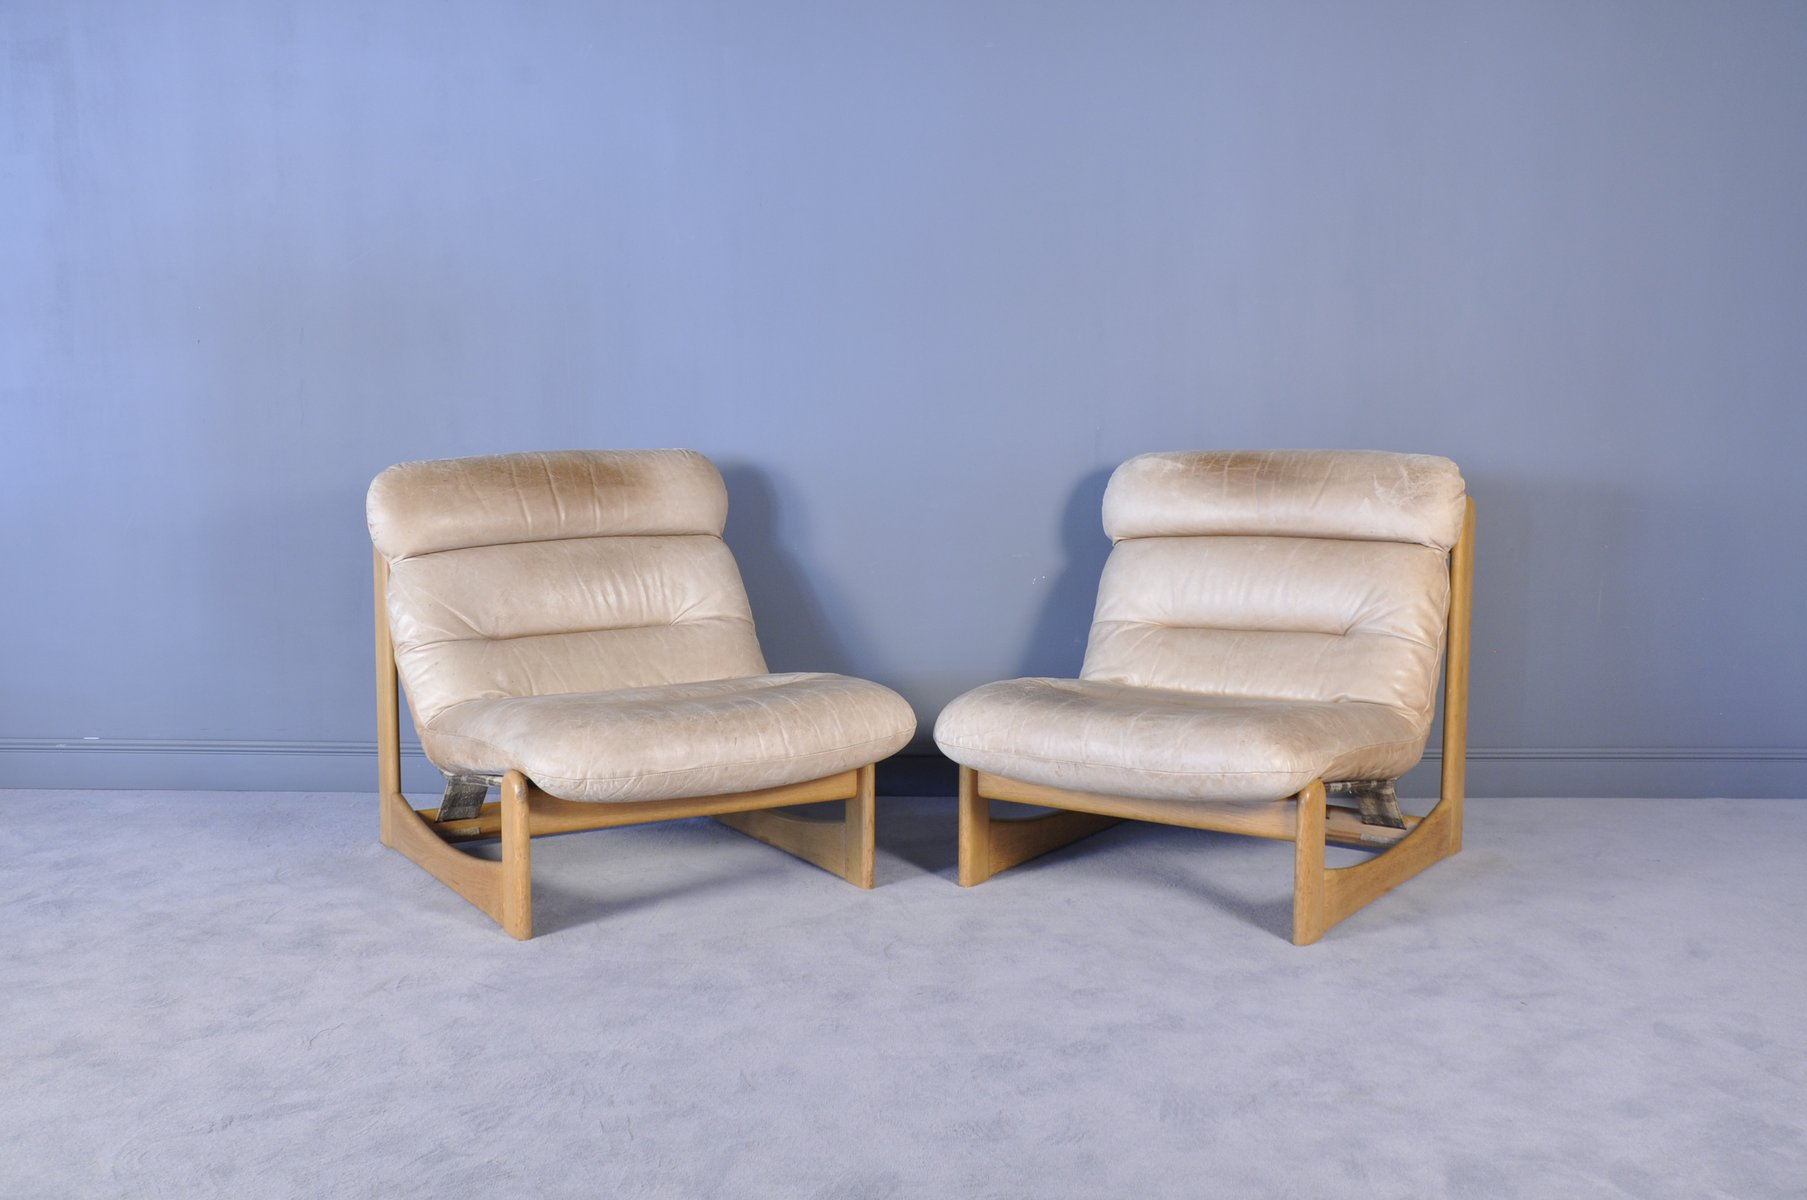 Mid century modern leather lounge chairs set of 2 for for Mid century modern leather chairs